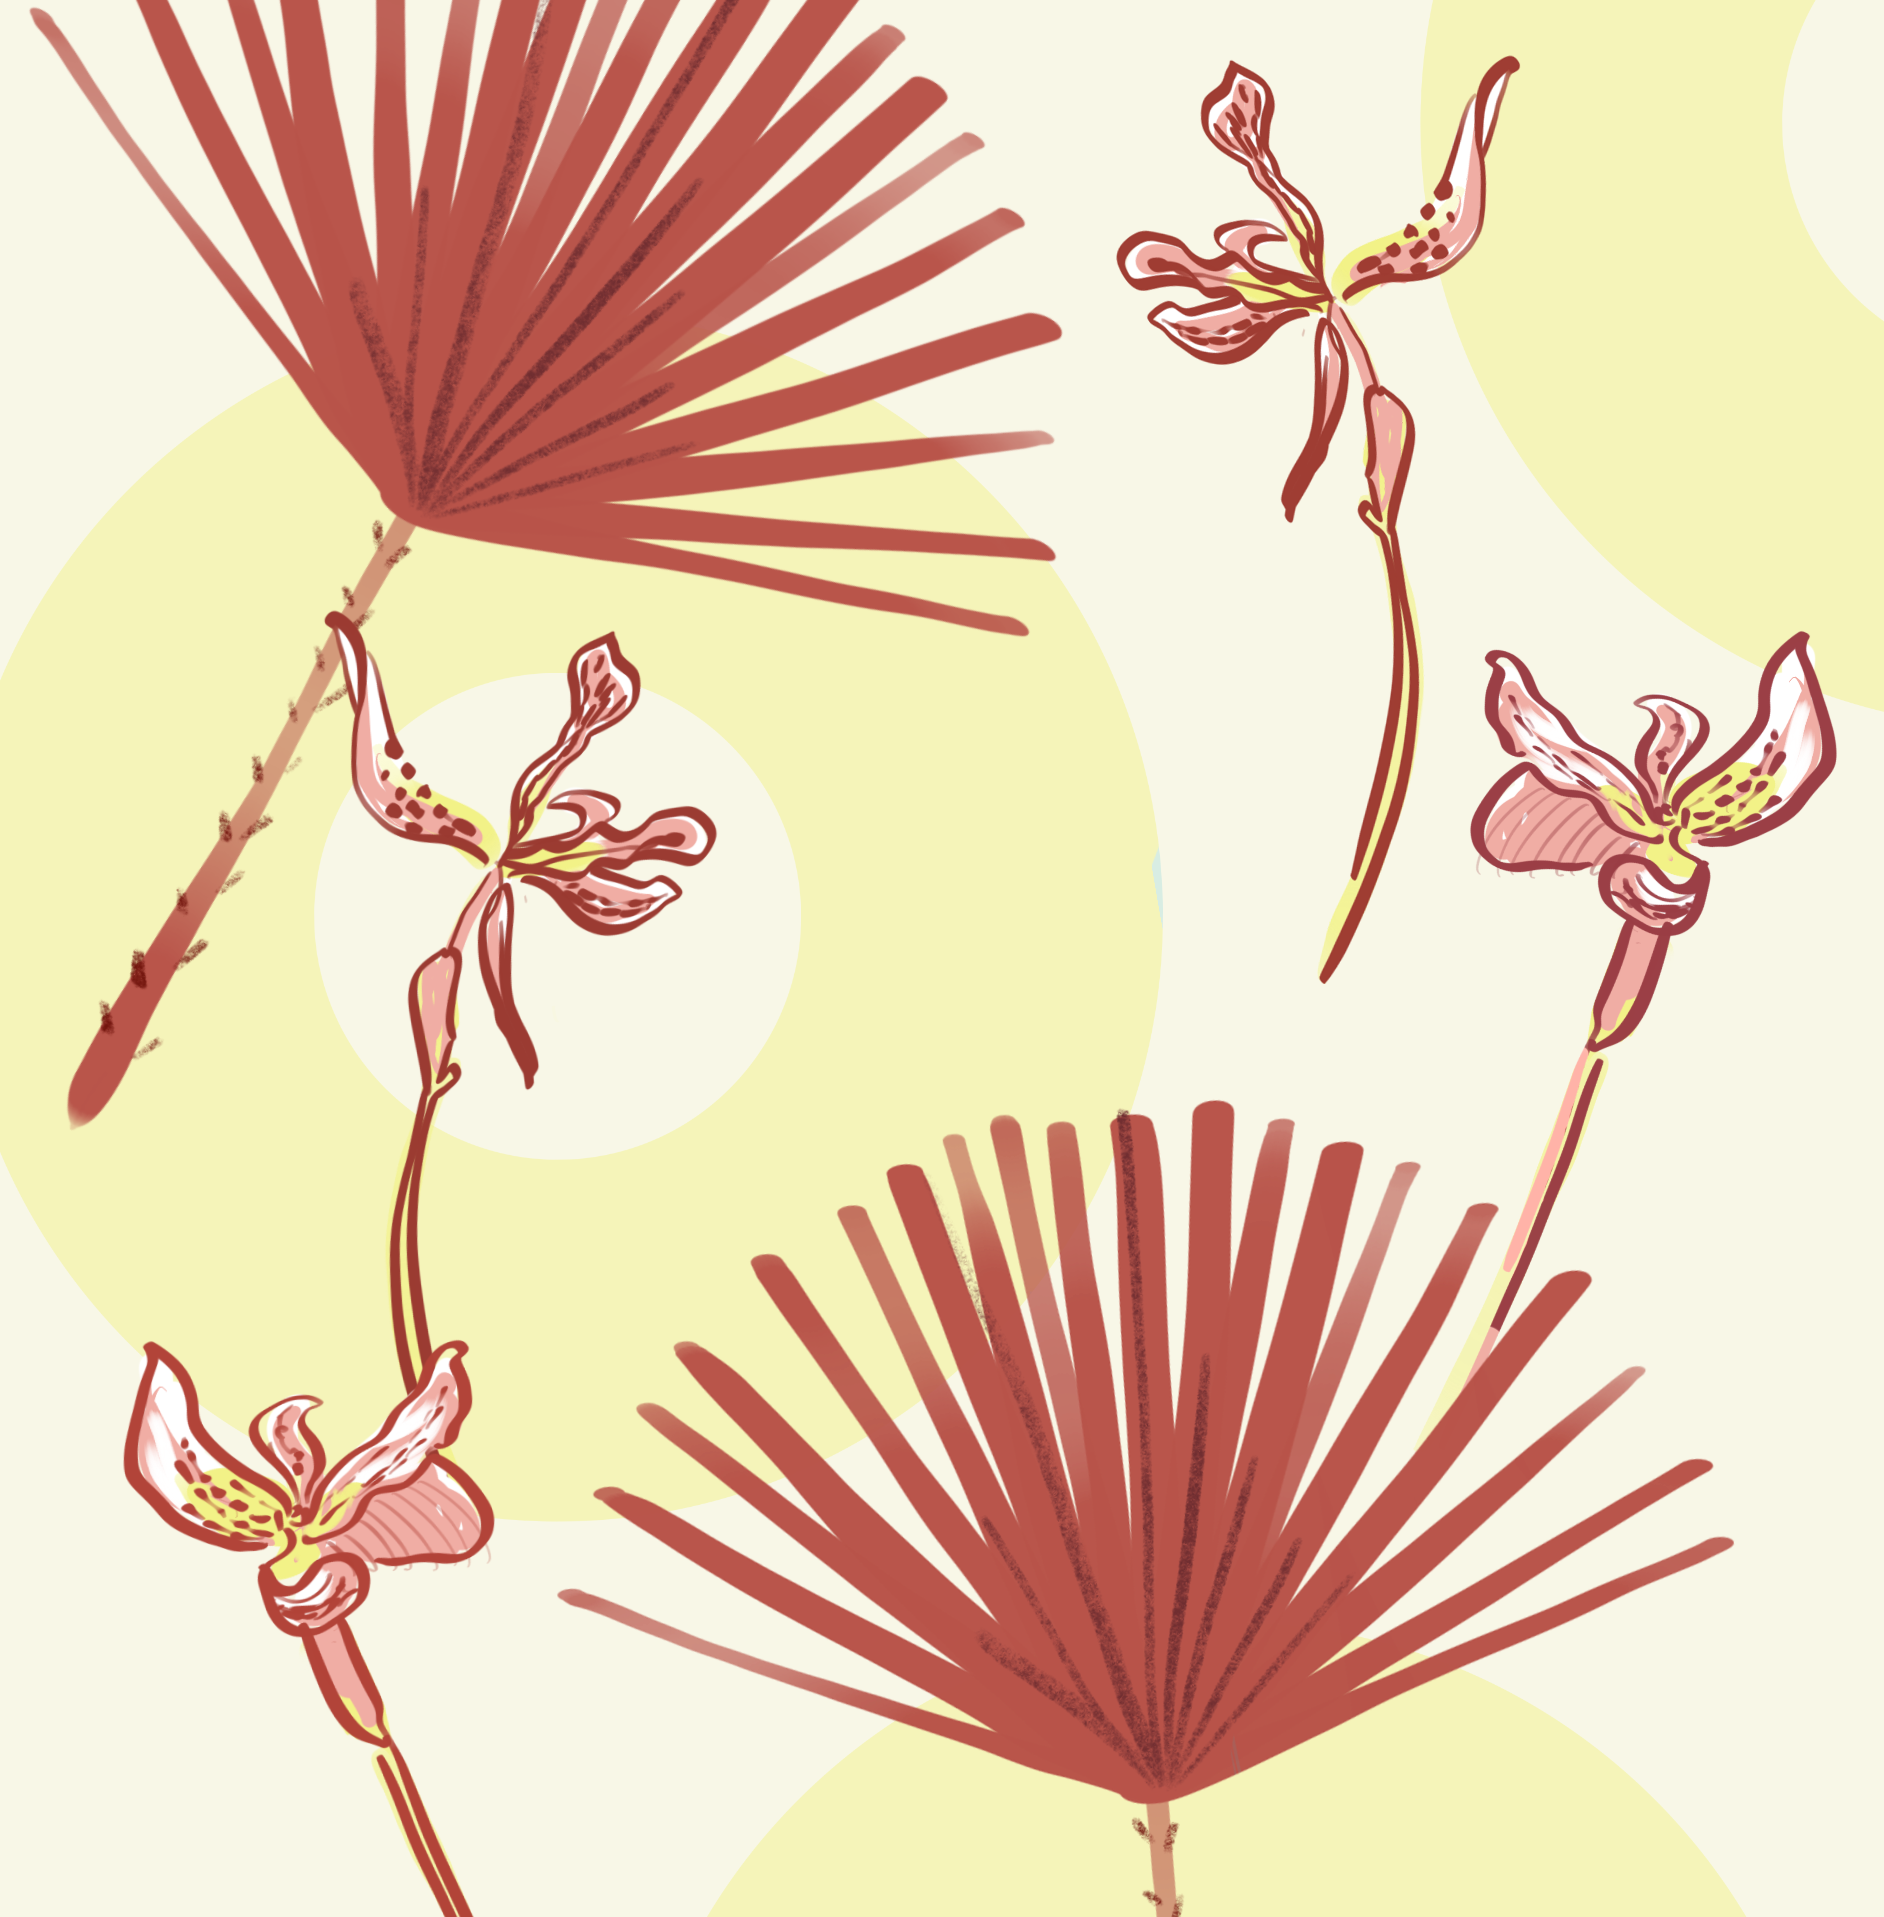 palm leaf and orchids illustration by Silvana Mariani